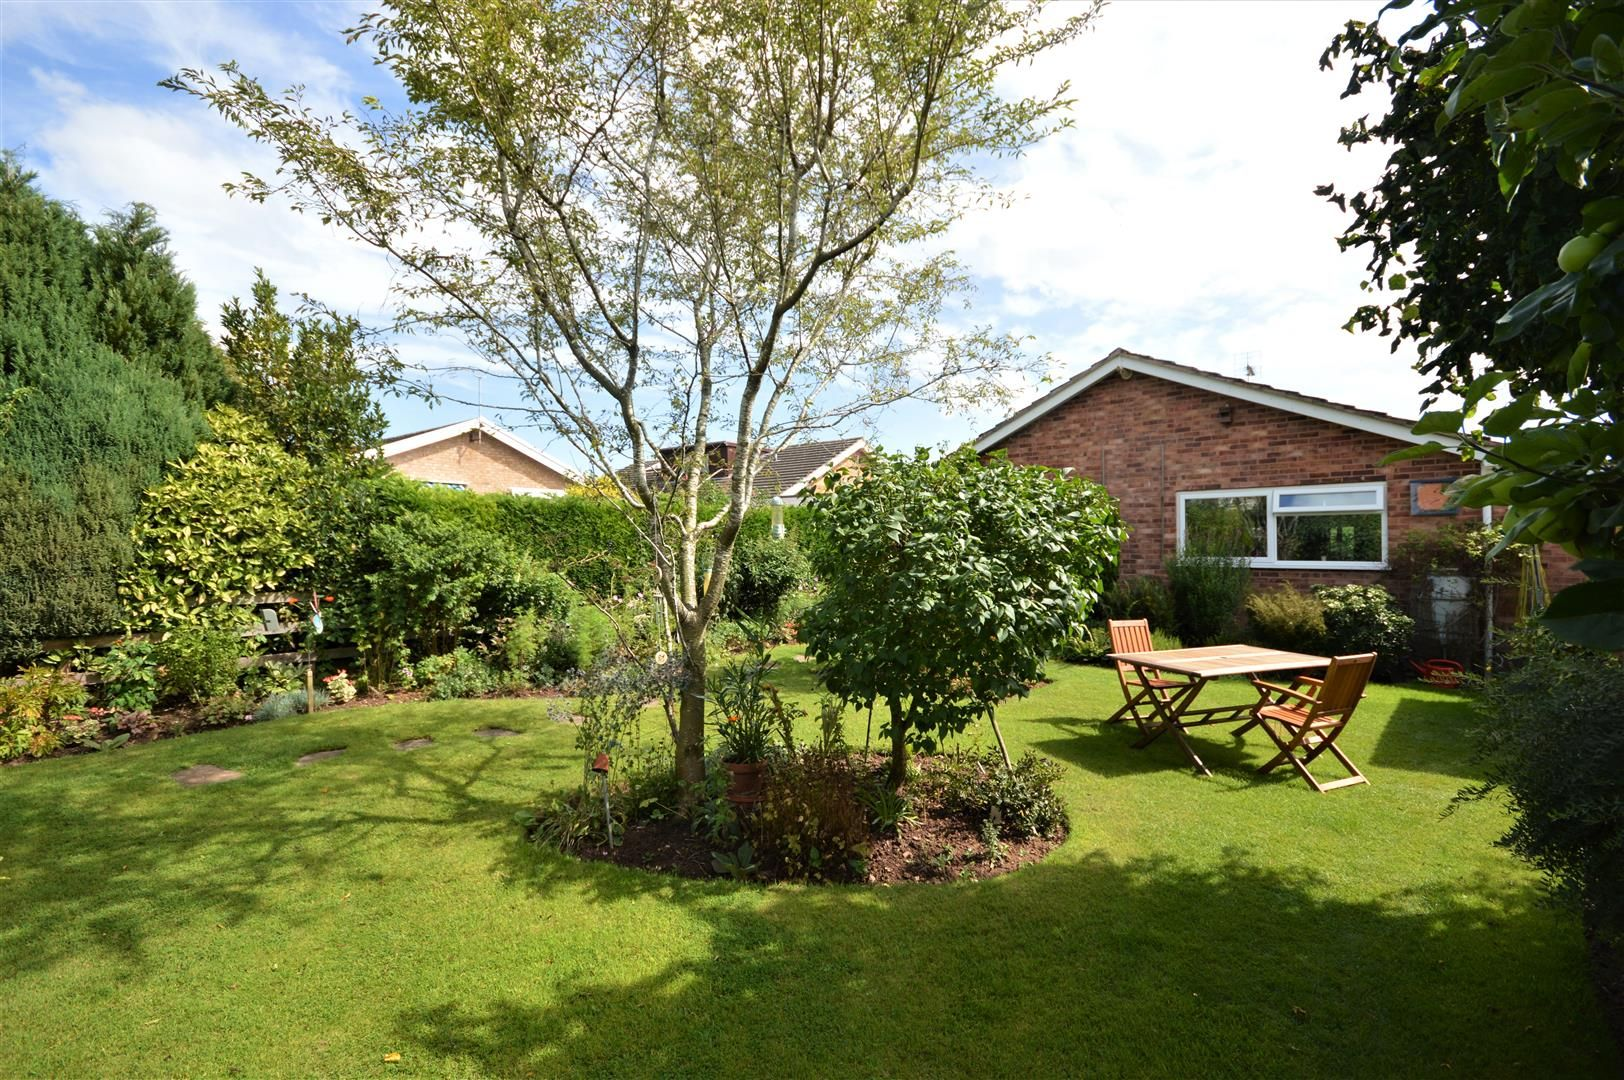 3 bed detached-bungalow for sale in Bodenham  - Property Image 3